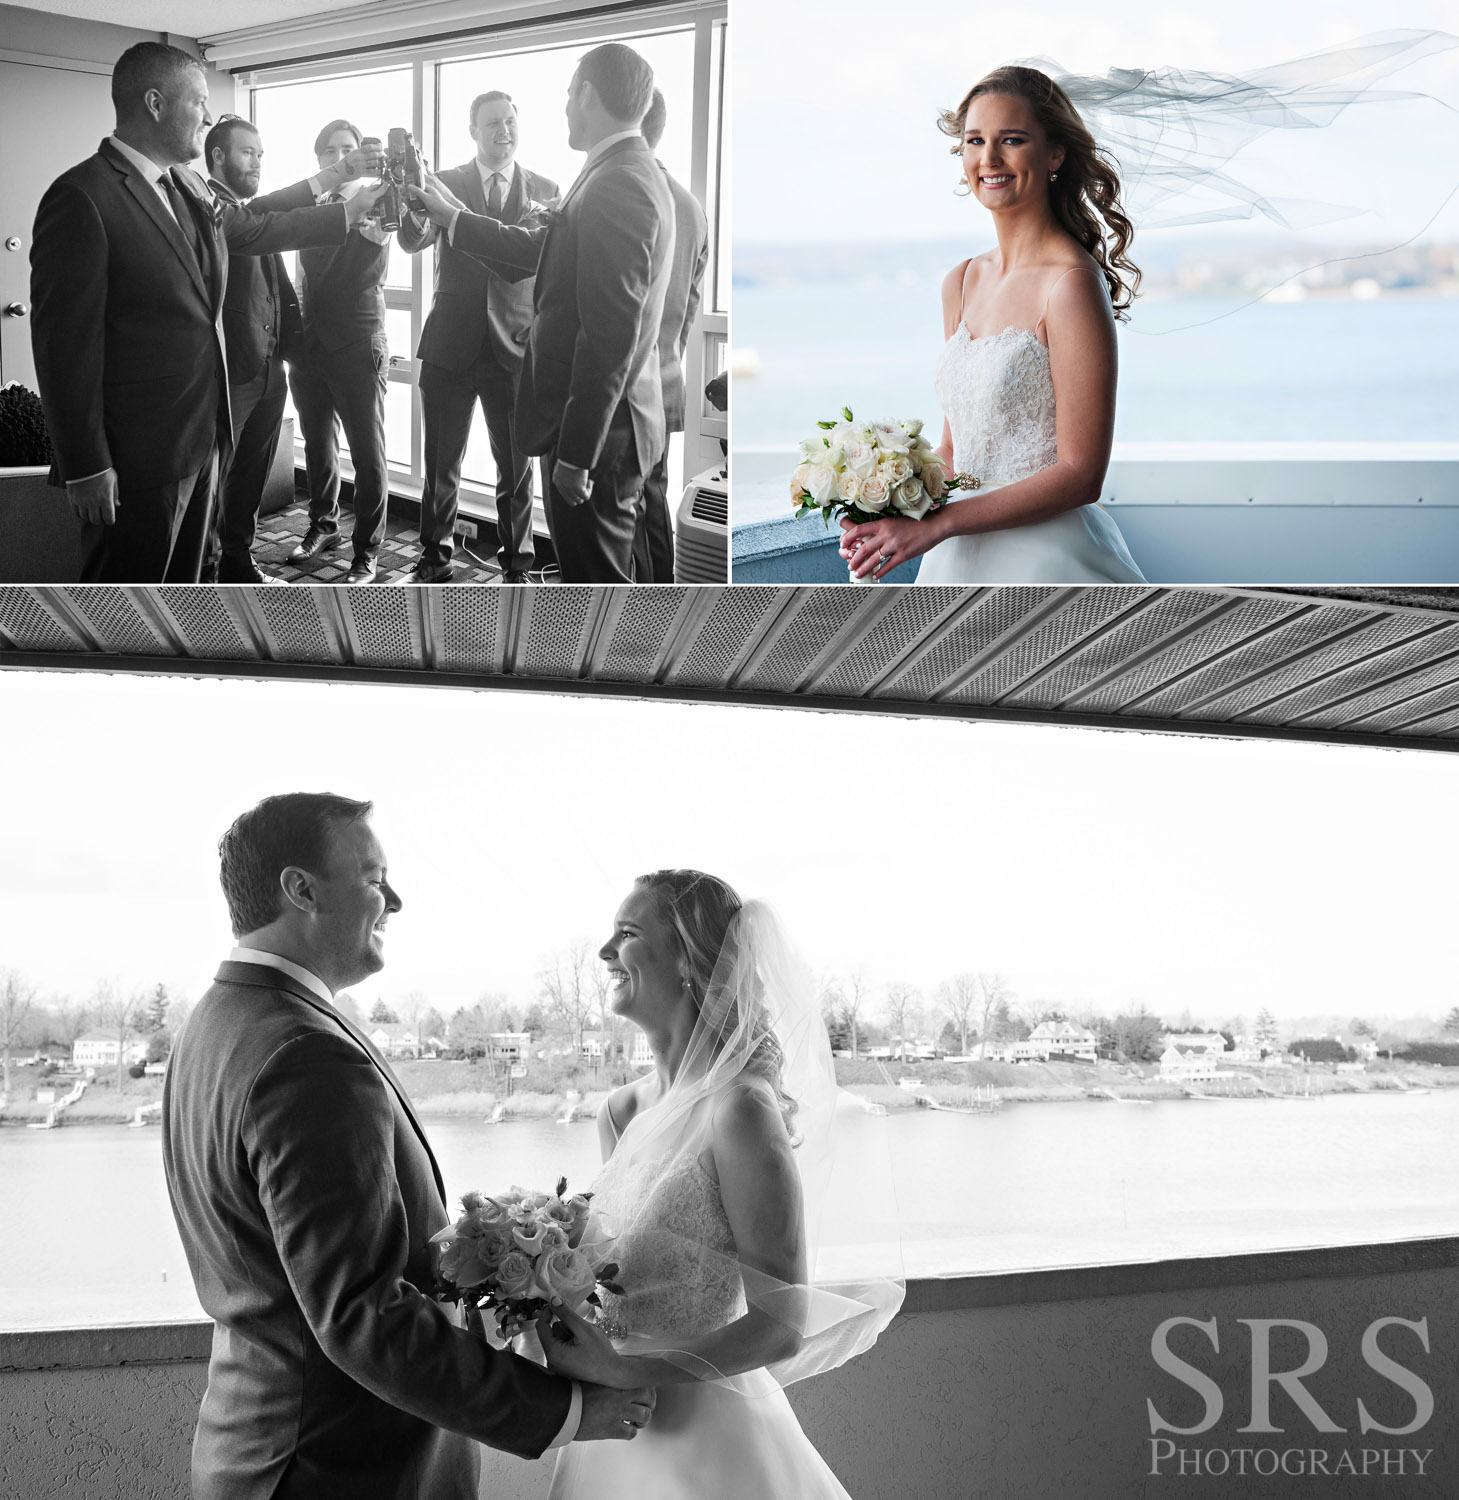 05_srs_photography_sara_stadtmiller_asbury_park_wedding_photography_nj_wedding_photographer_monmouth_county_wedding_photographer_the_oyster_point_first_look